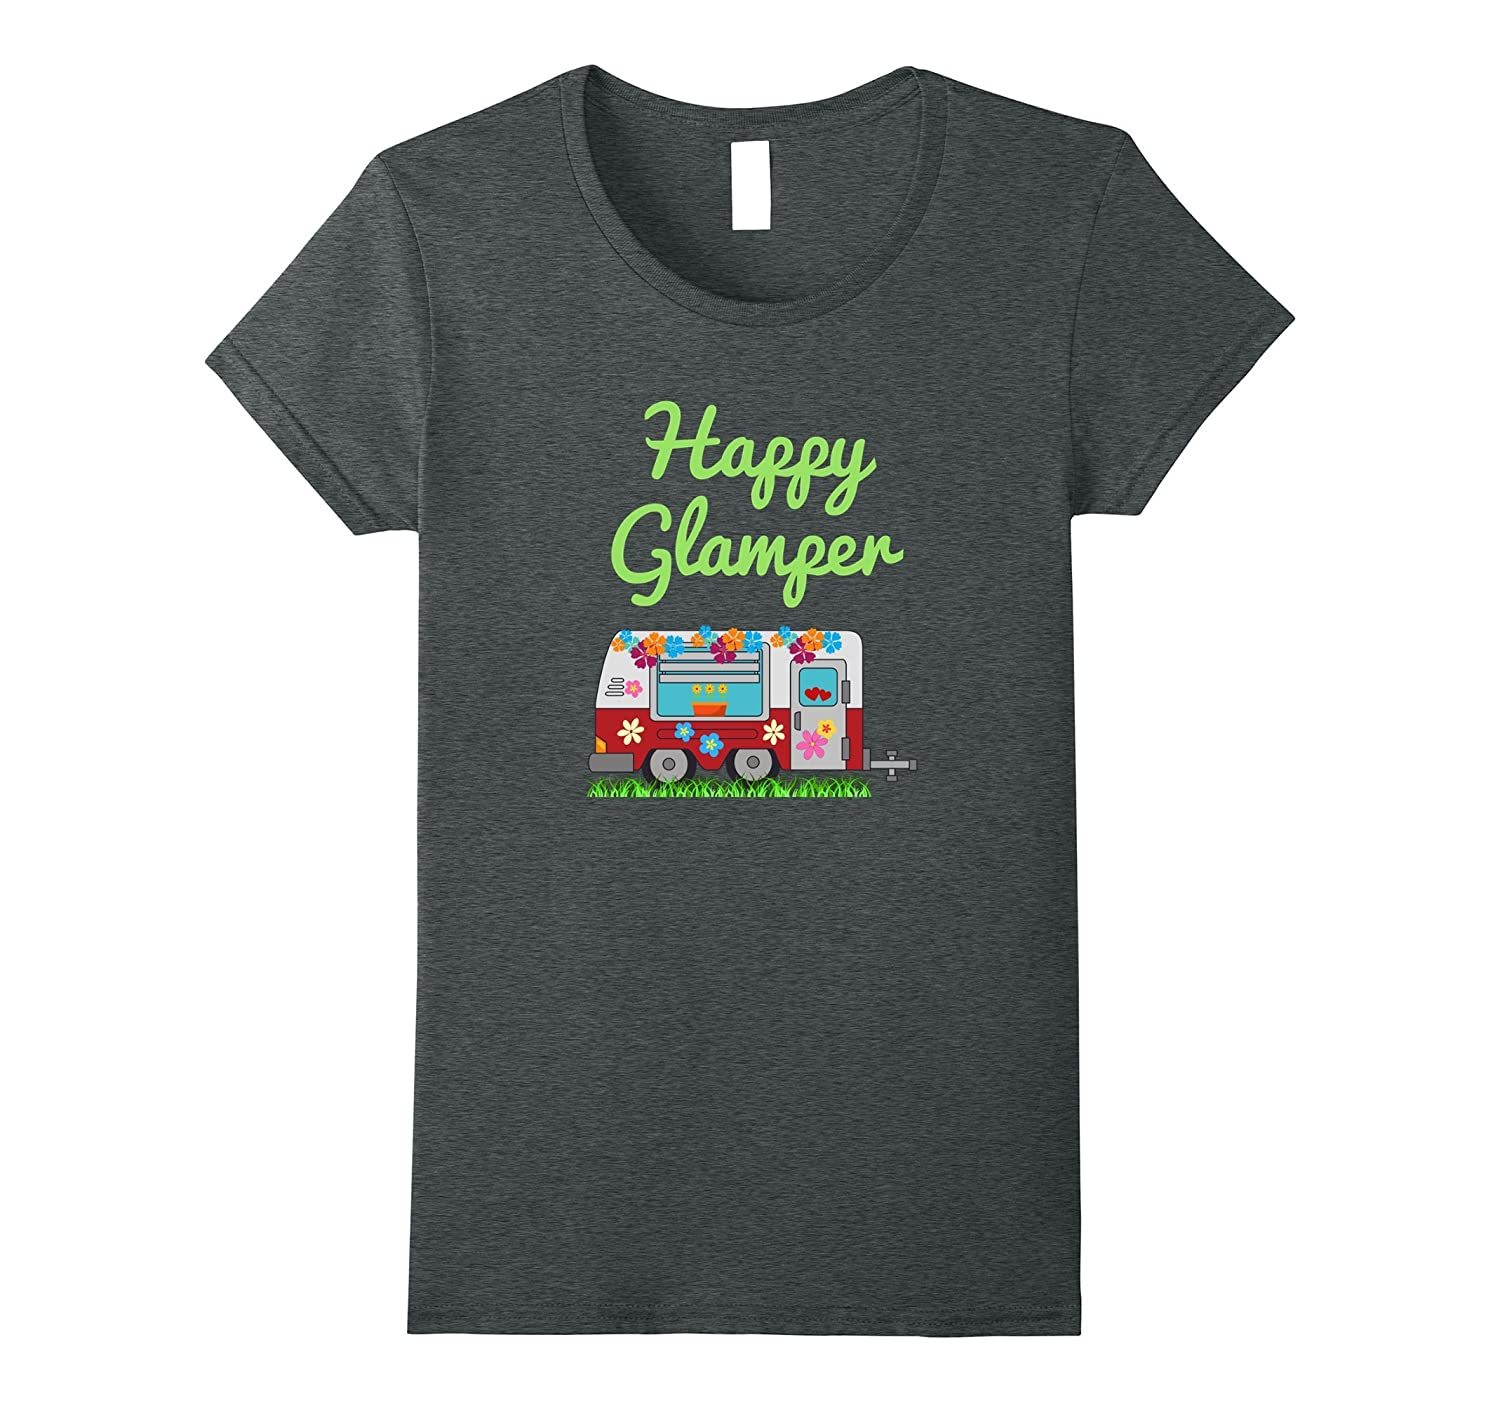 Awesome Happy Glamper T Shirt, Happy Camper Shirt for Women